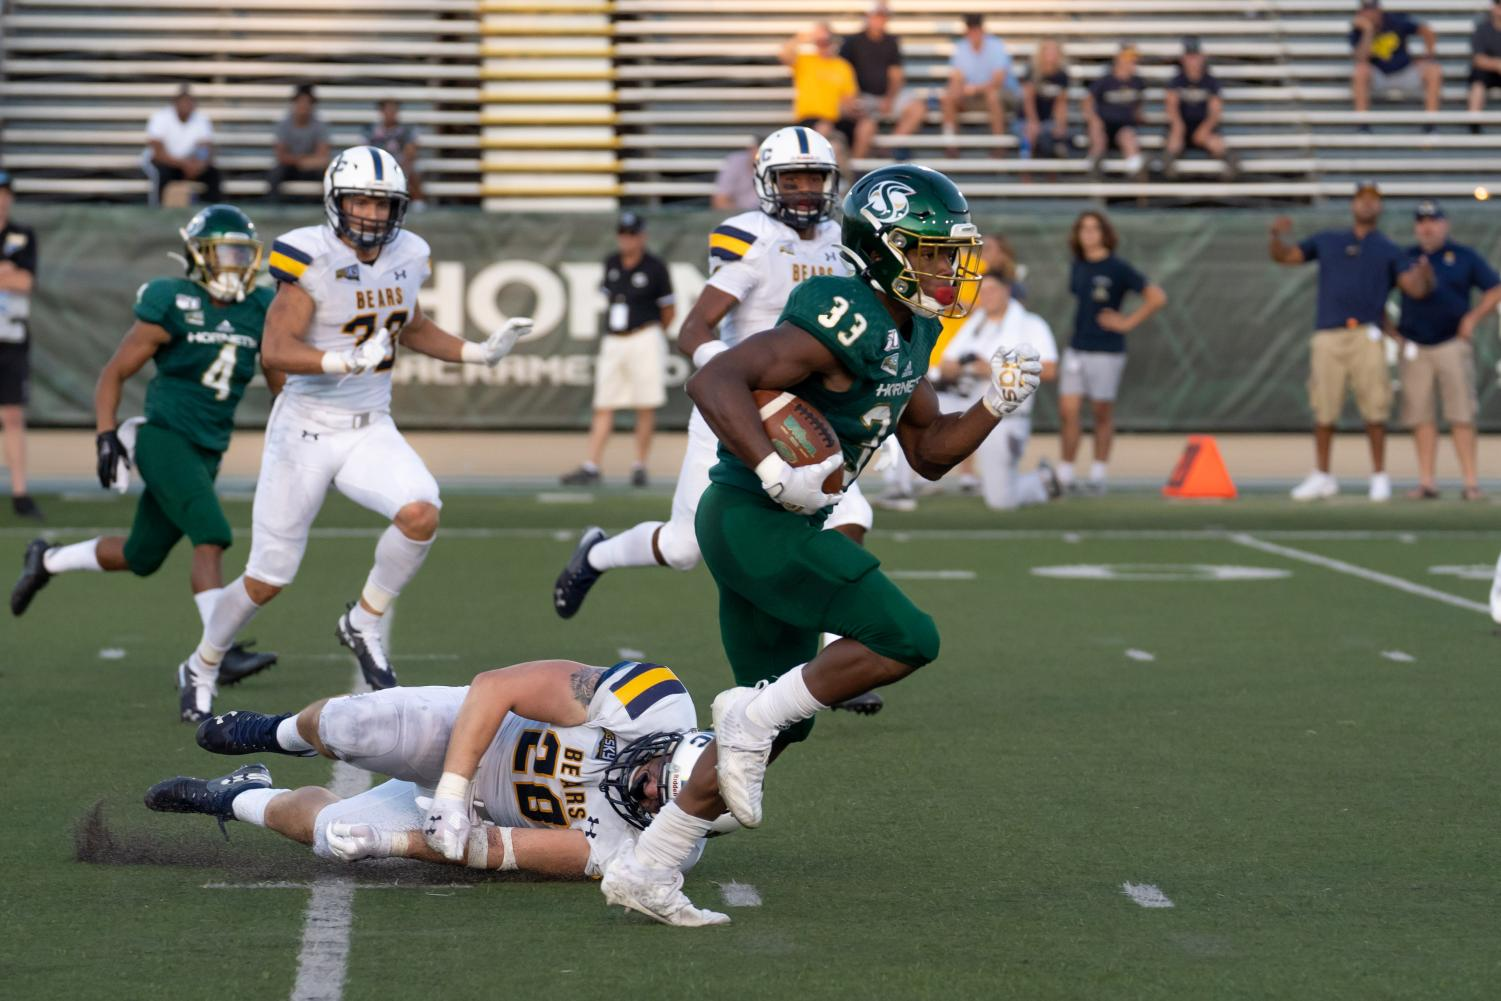 Sac State junior running back Elijah Dotson runs over the Bears defense against Northern Colorado on Saturday, Sept. 14 at Hornet Stadium. Dotson had a total of 158 yards receiving and one touchdown in the win.